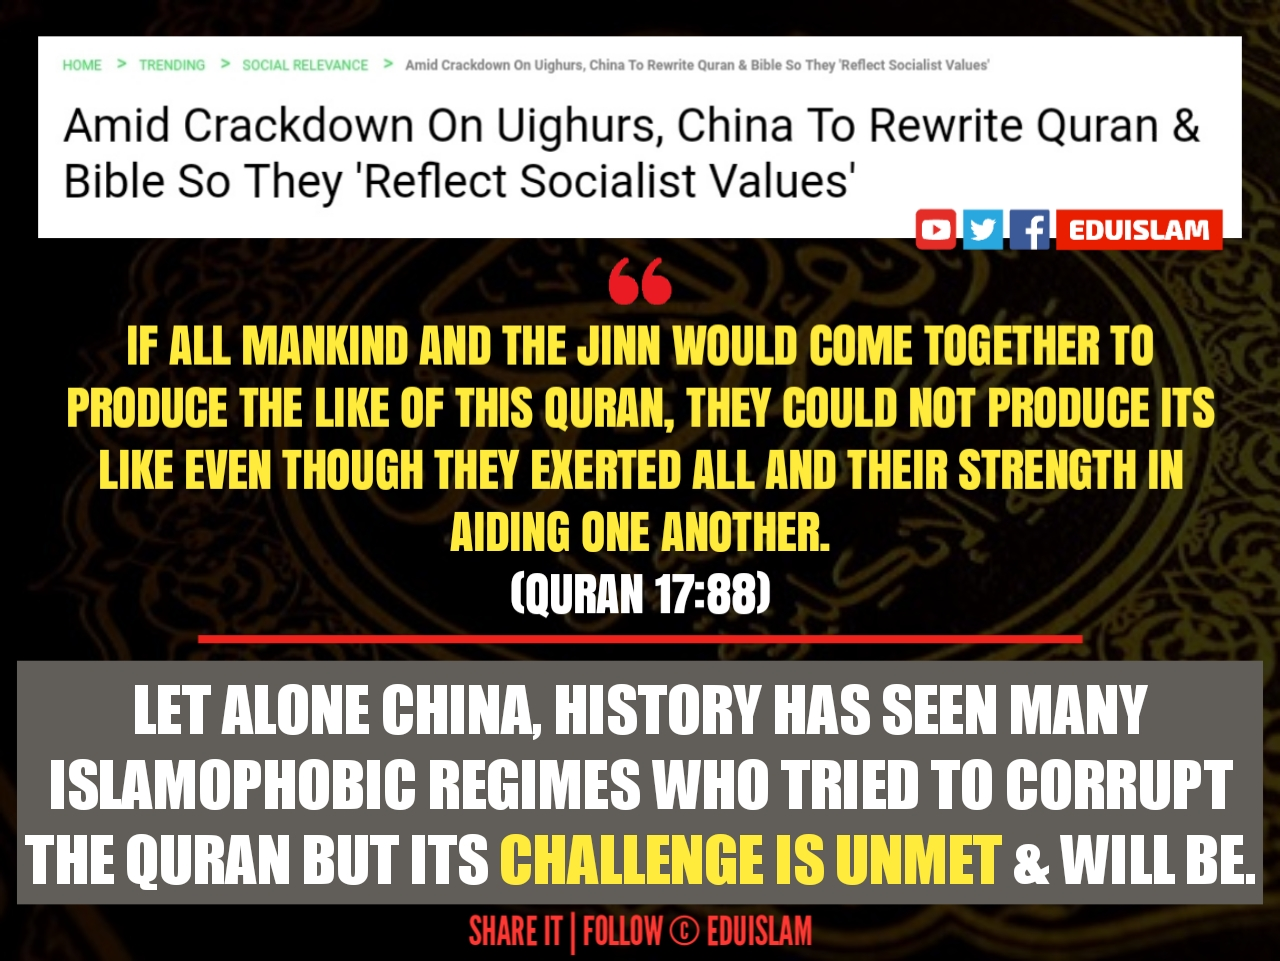 China to rewrite the Quran, Ughyur Muslims Persecution, Islamophobia, Reply to china against rewriting the Quran, EduIslam